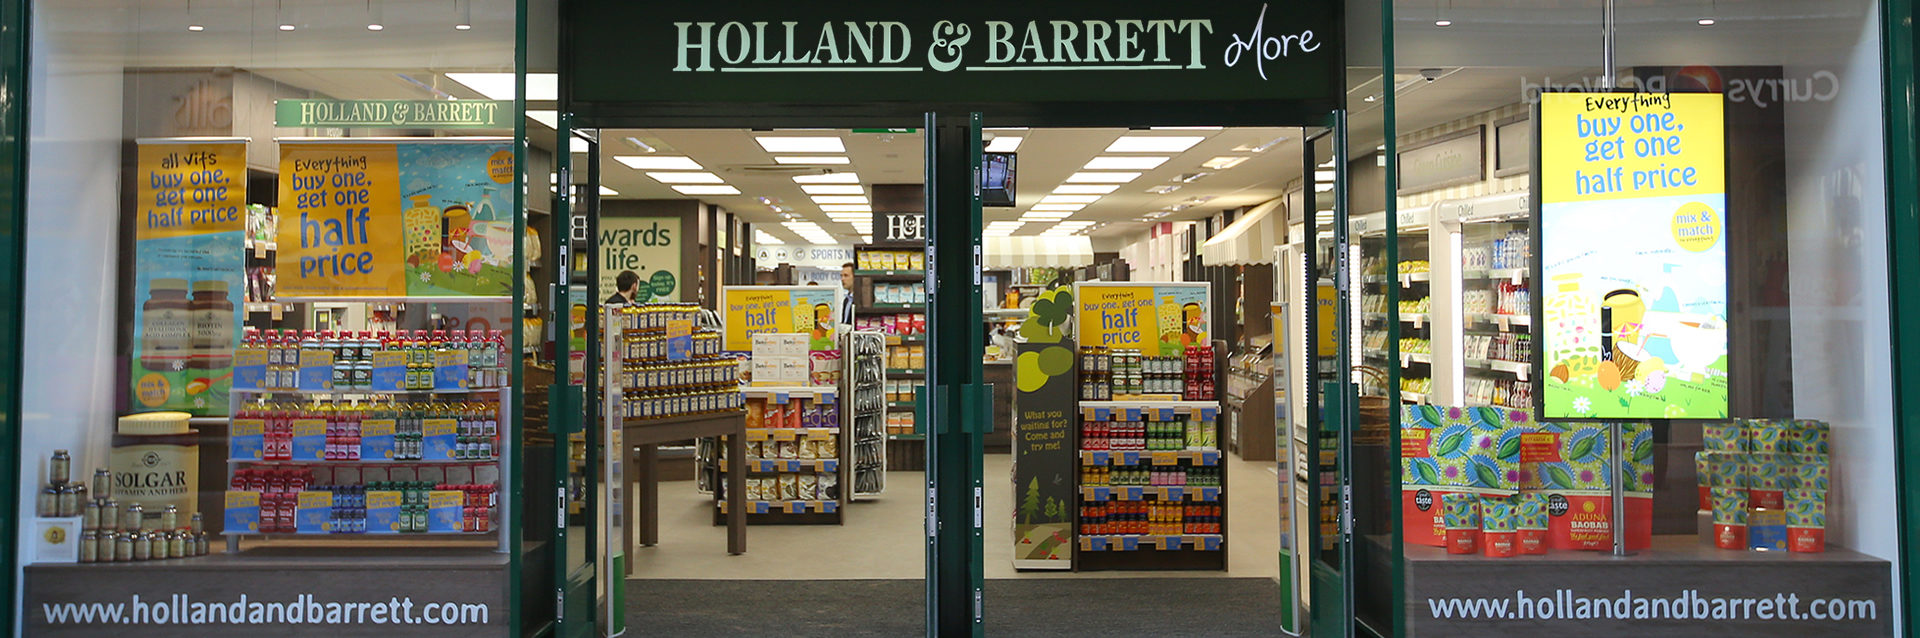 holland&barrett-banner